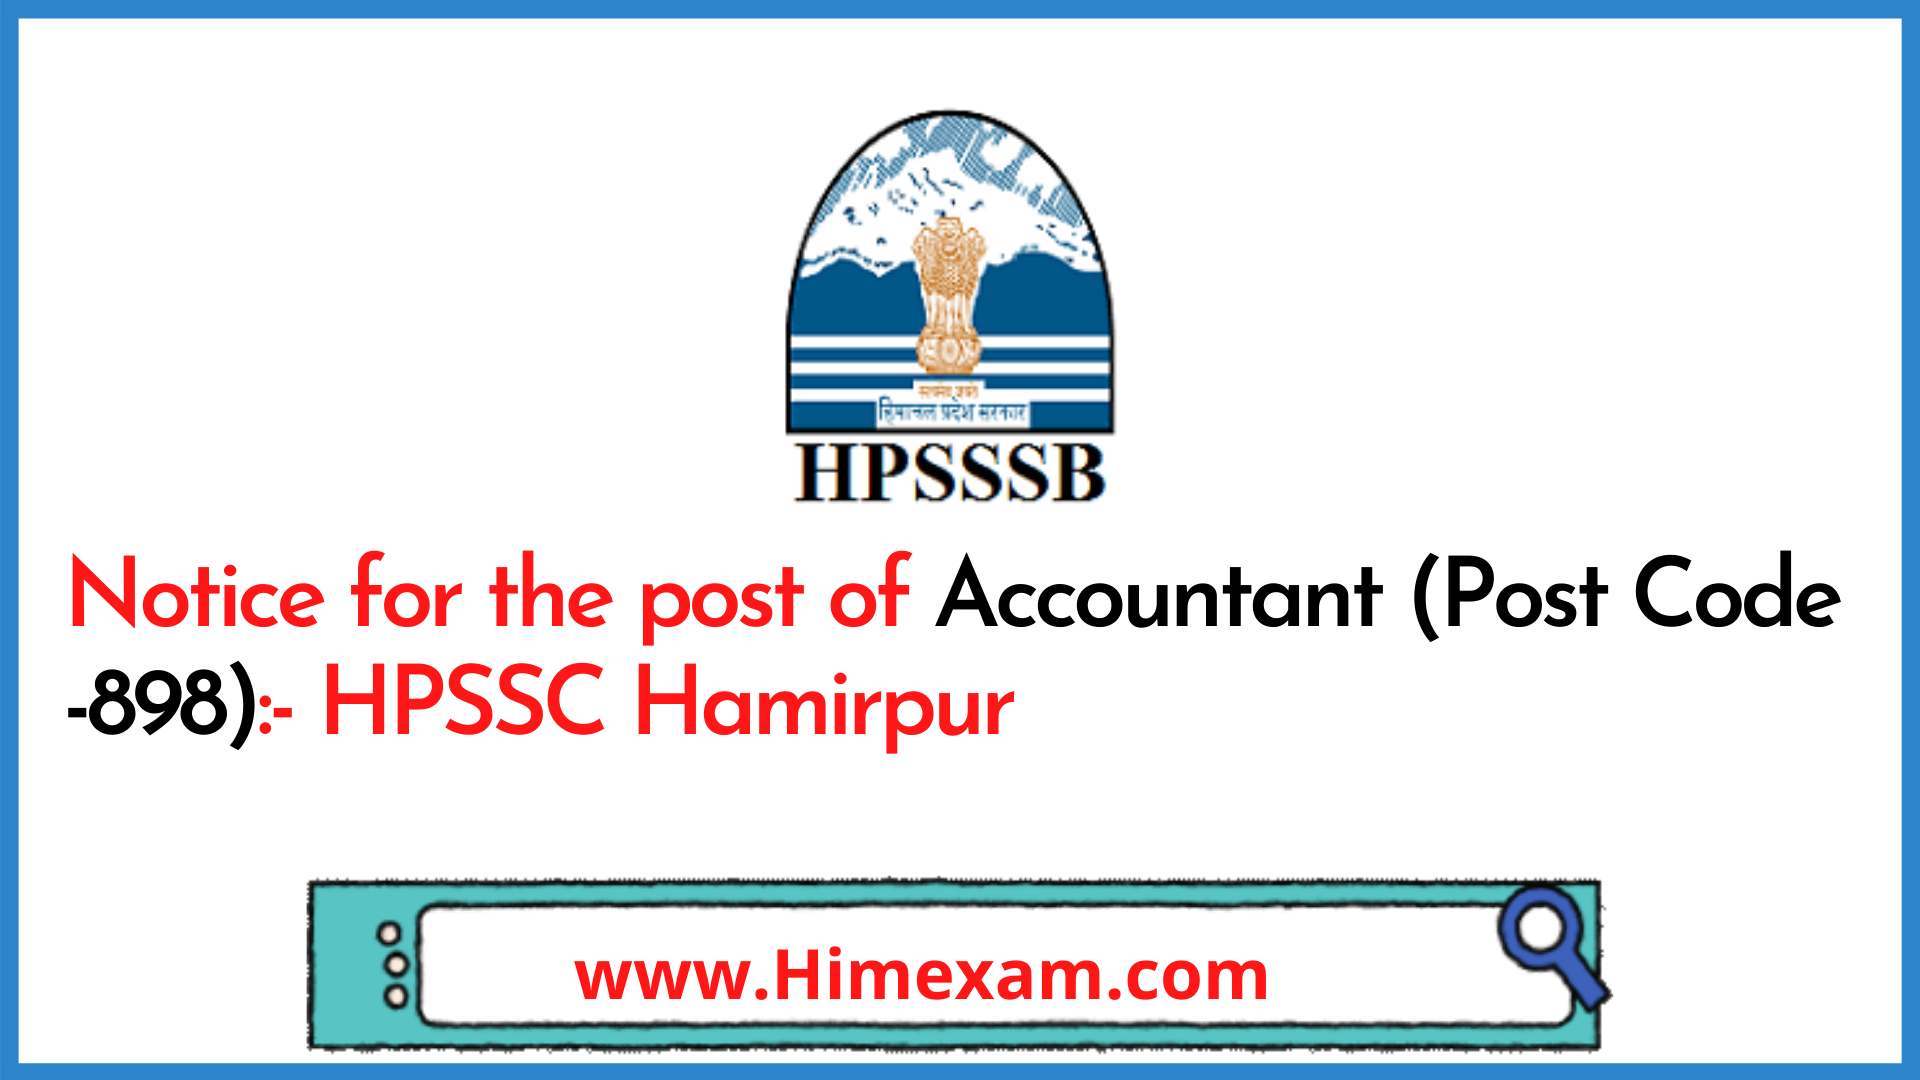 Notice for the post of Accountant (Post Code -898):- HPSSC Hamirpur